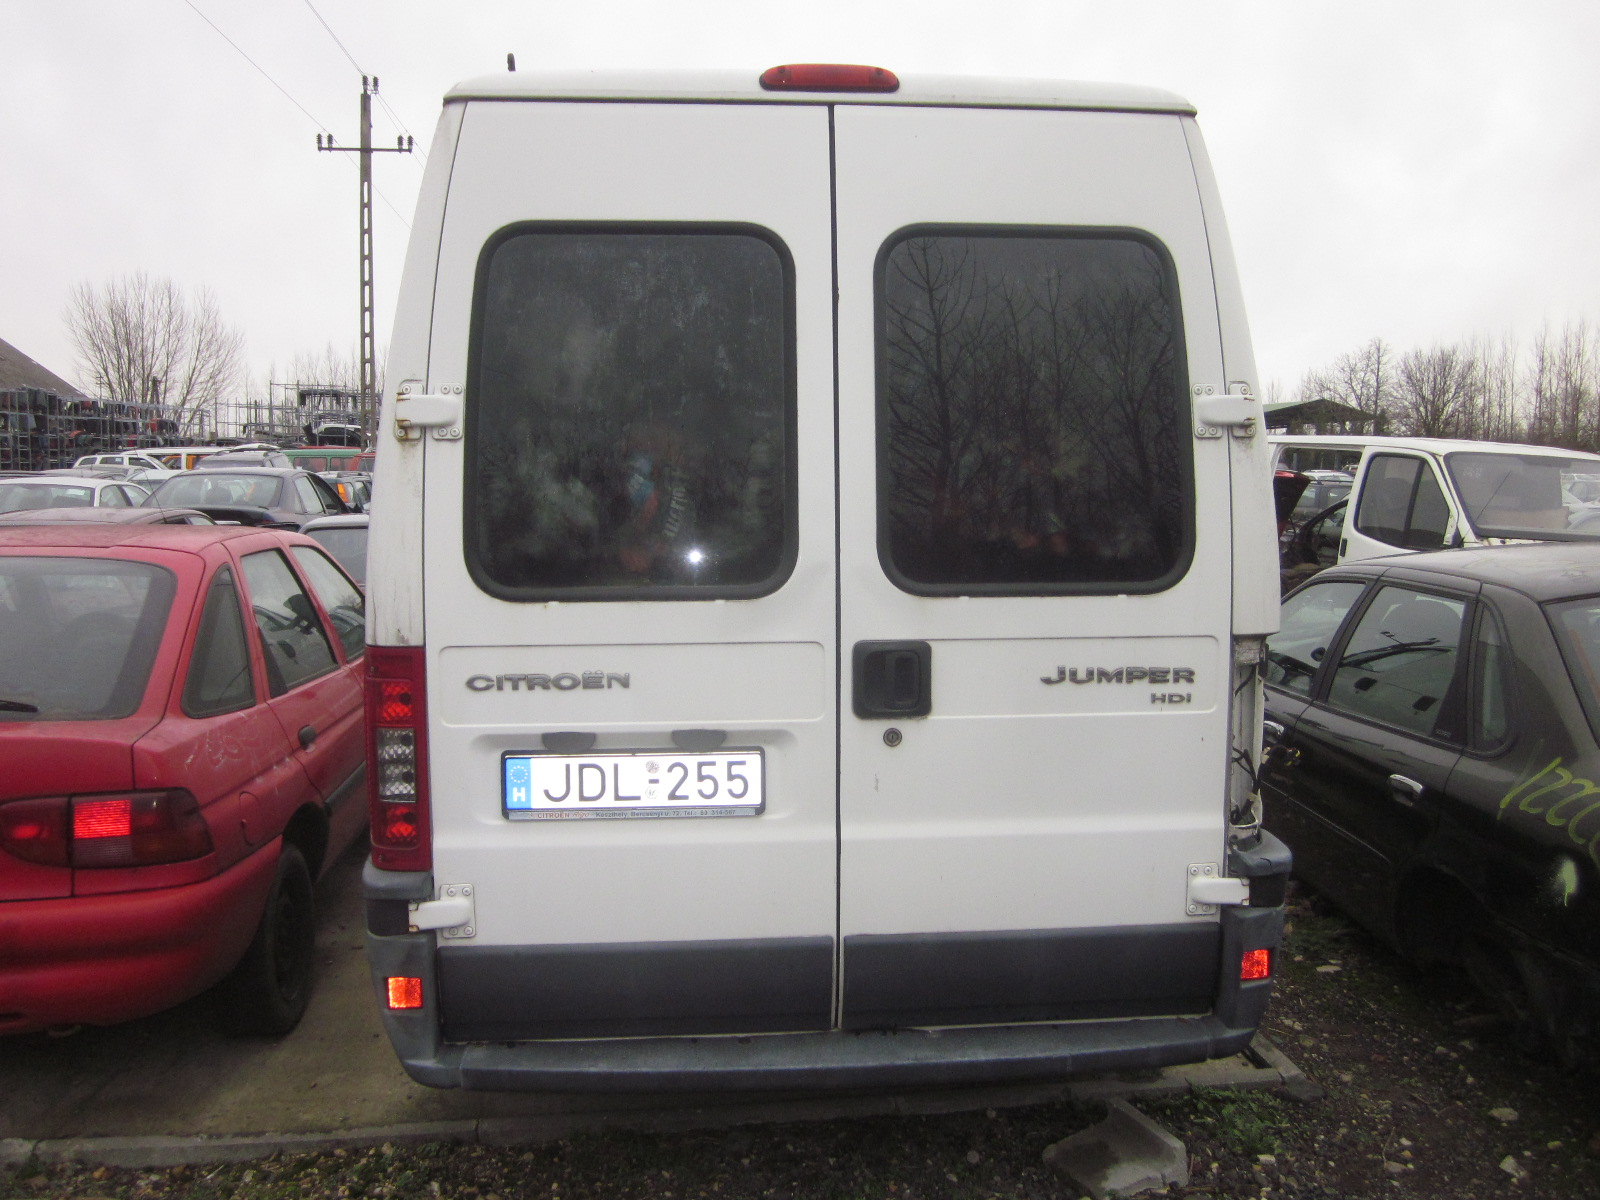 Citroen Jumper 29CH 2004 photo - 12